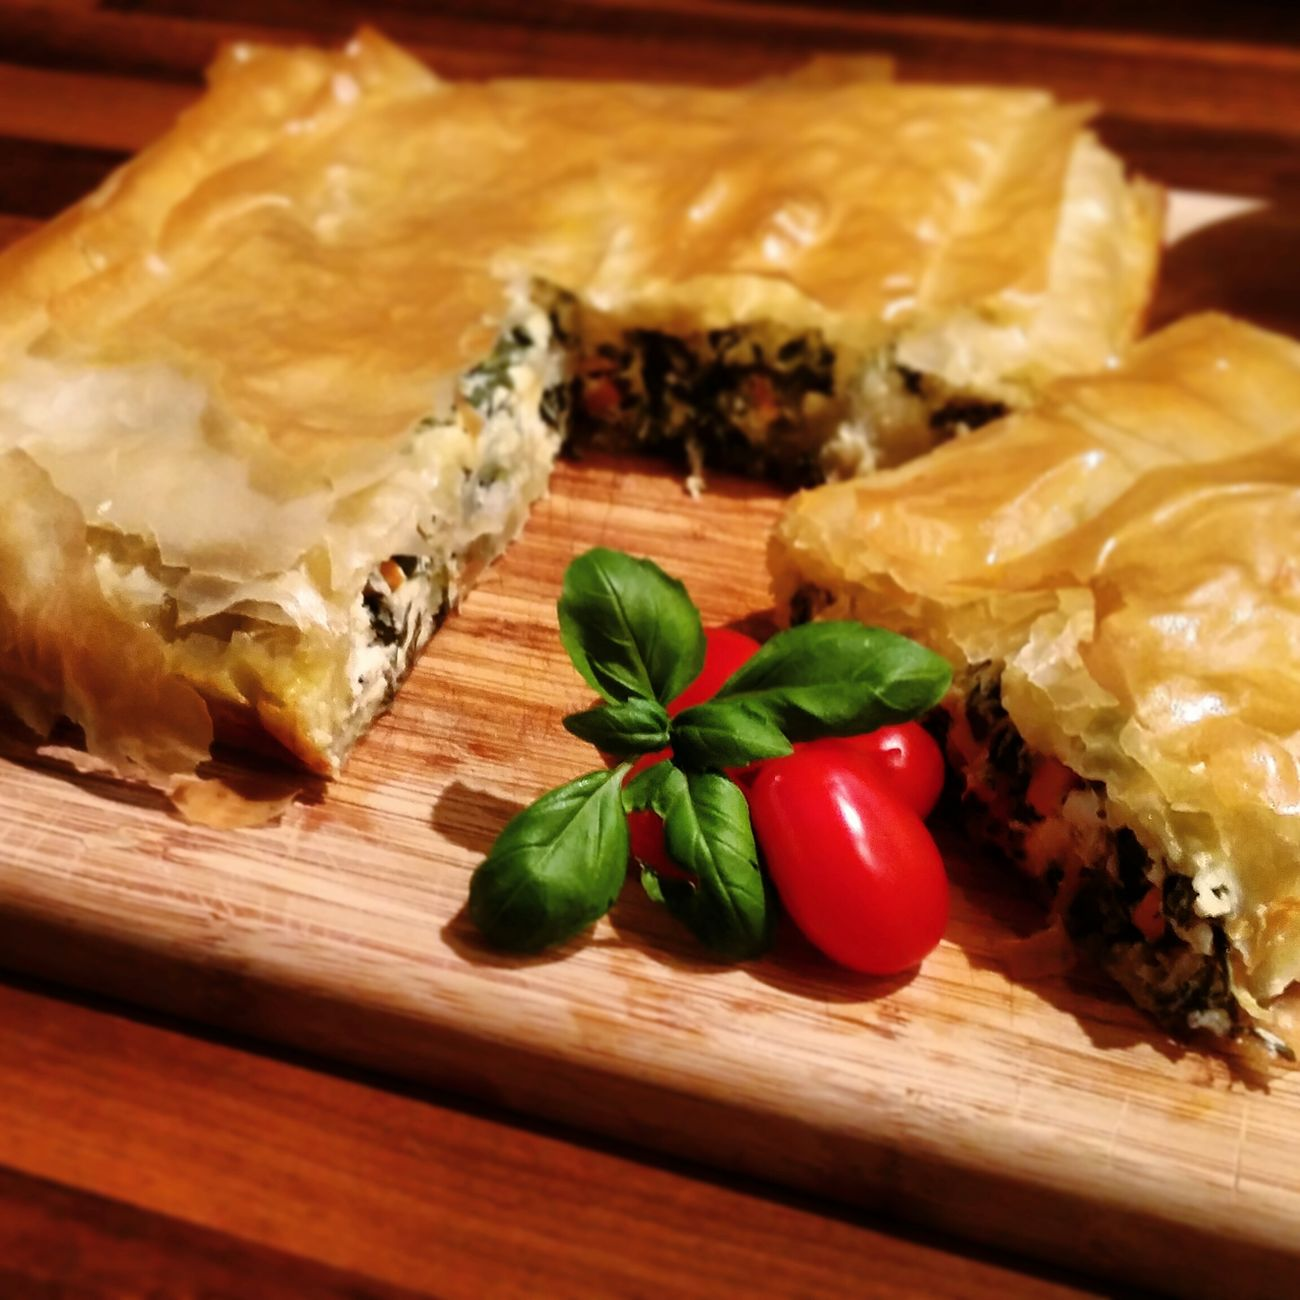 Spinach Casserole Phyllo Pastry Pie Foodporn Food Photography Cooking Time Filo Pastry Delicious Food